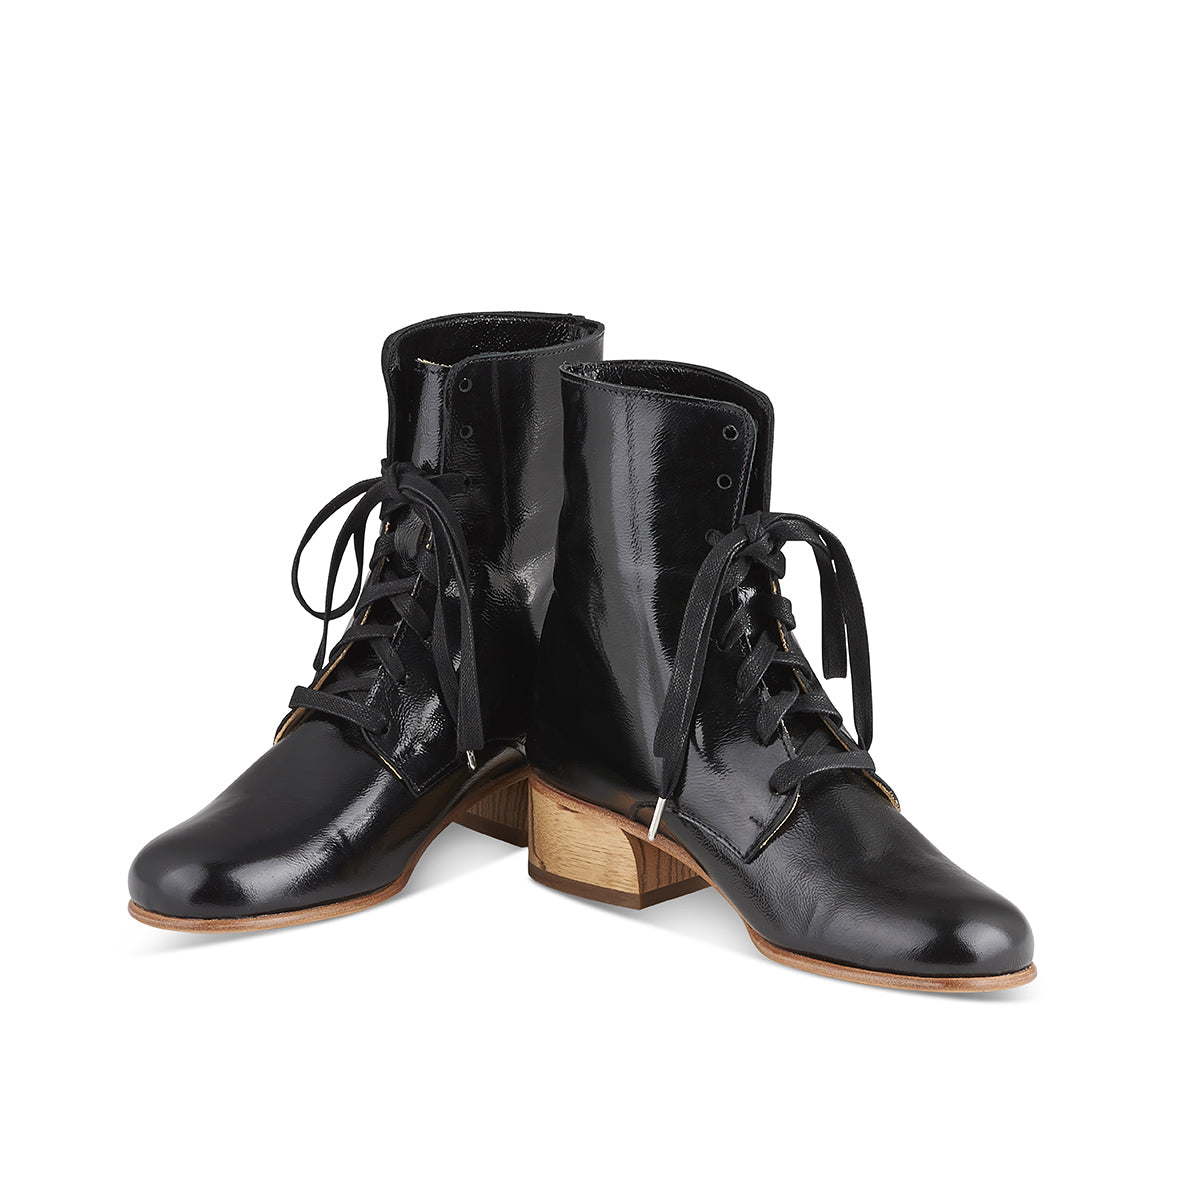 Cricket Boot black patent